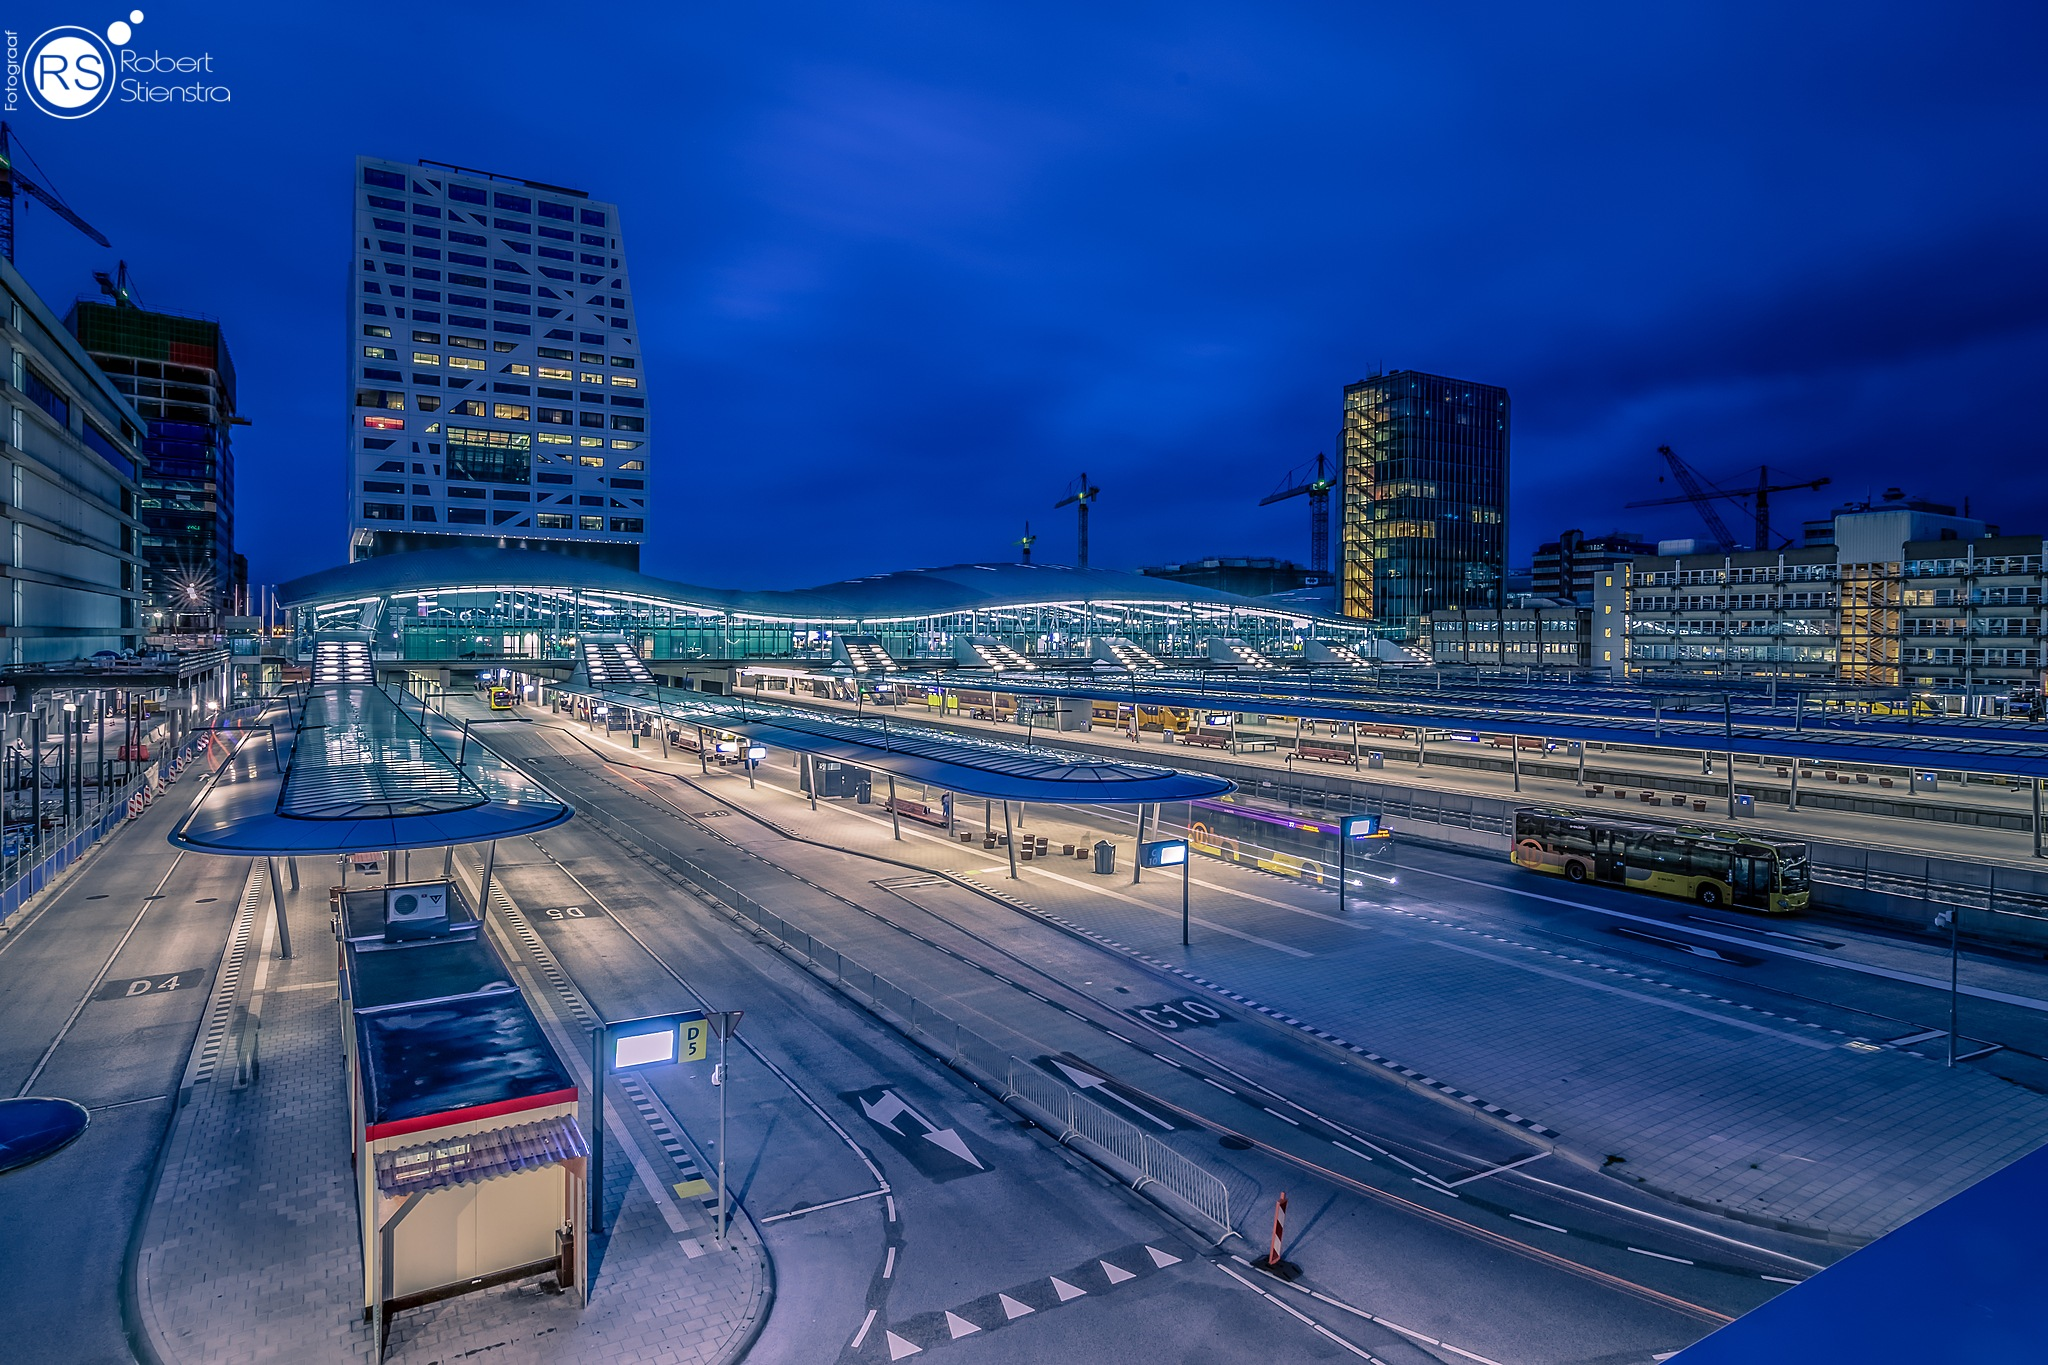 Utrecht central station by Robert Stienstra